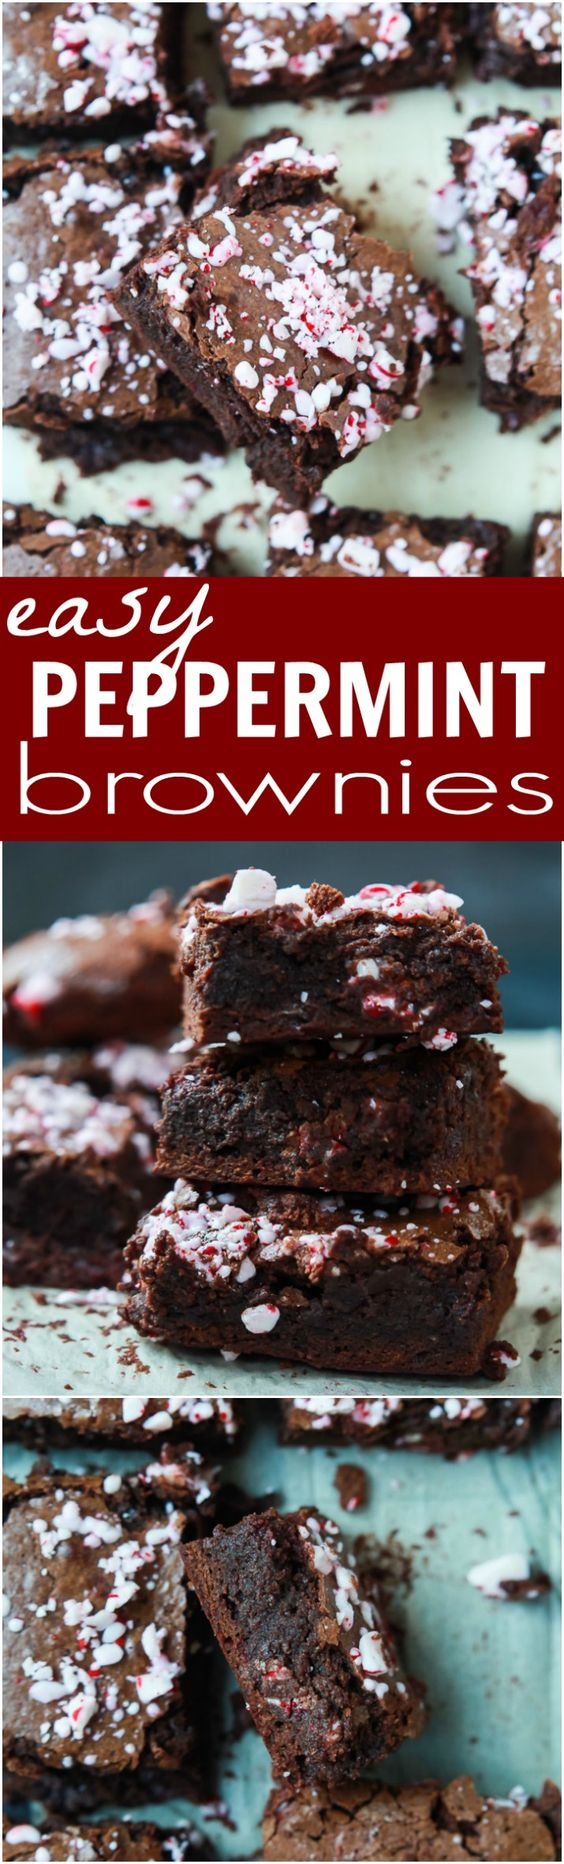 The BEST Peppermint Brownies made from scratch with a secret ingredient to make them extra fudgy then topped with crushed candy canes for the perfect holiday finishing touch!   joyfulhealthyeats.com